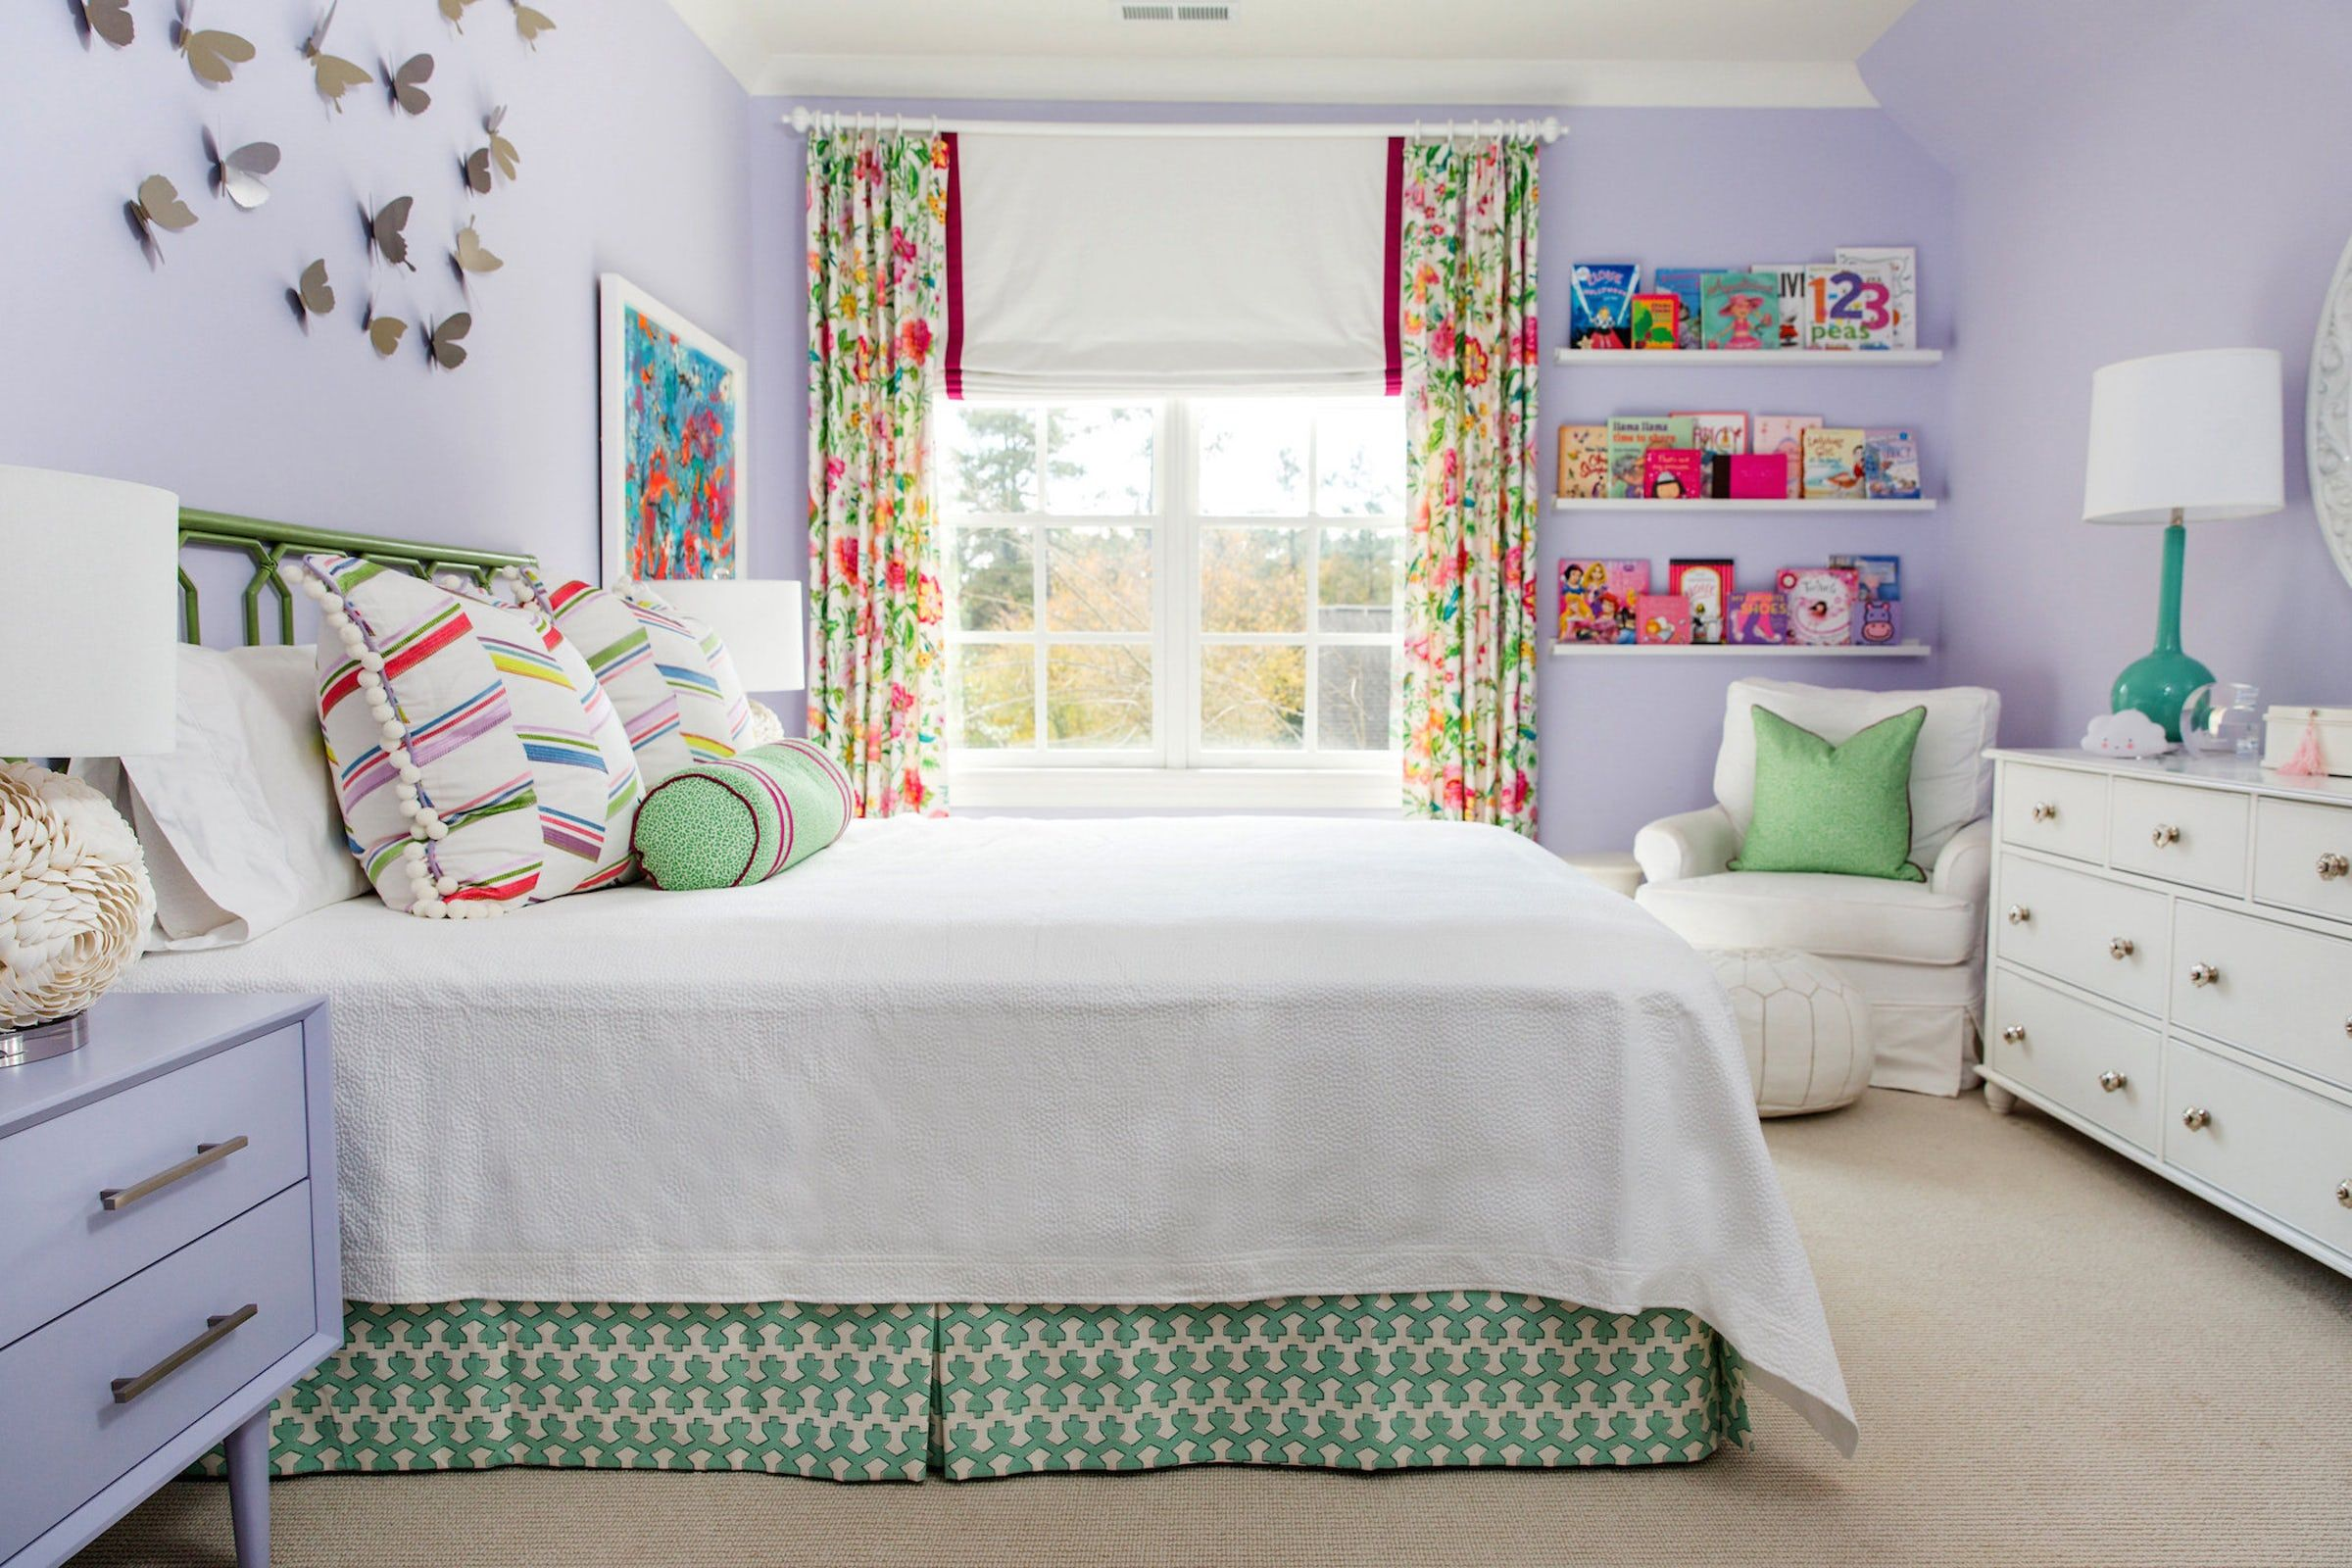 Great 15 Creative Bedroom Decorating Ideas For Girls